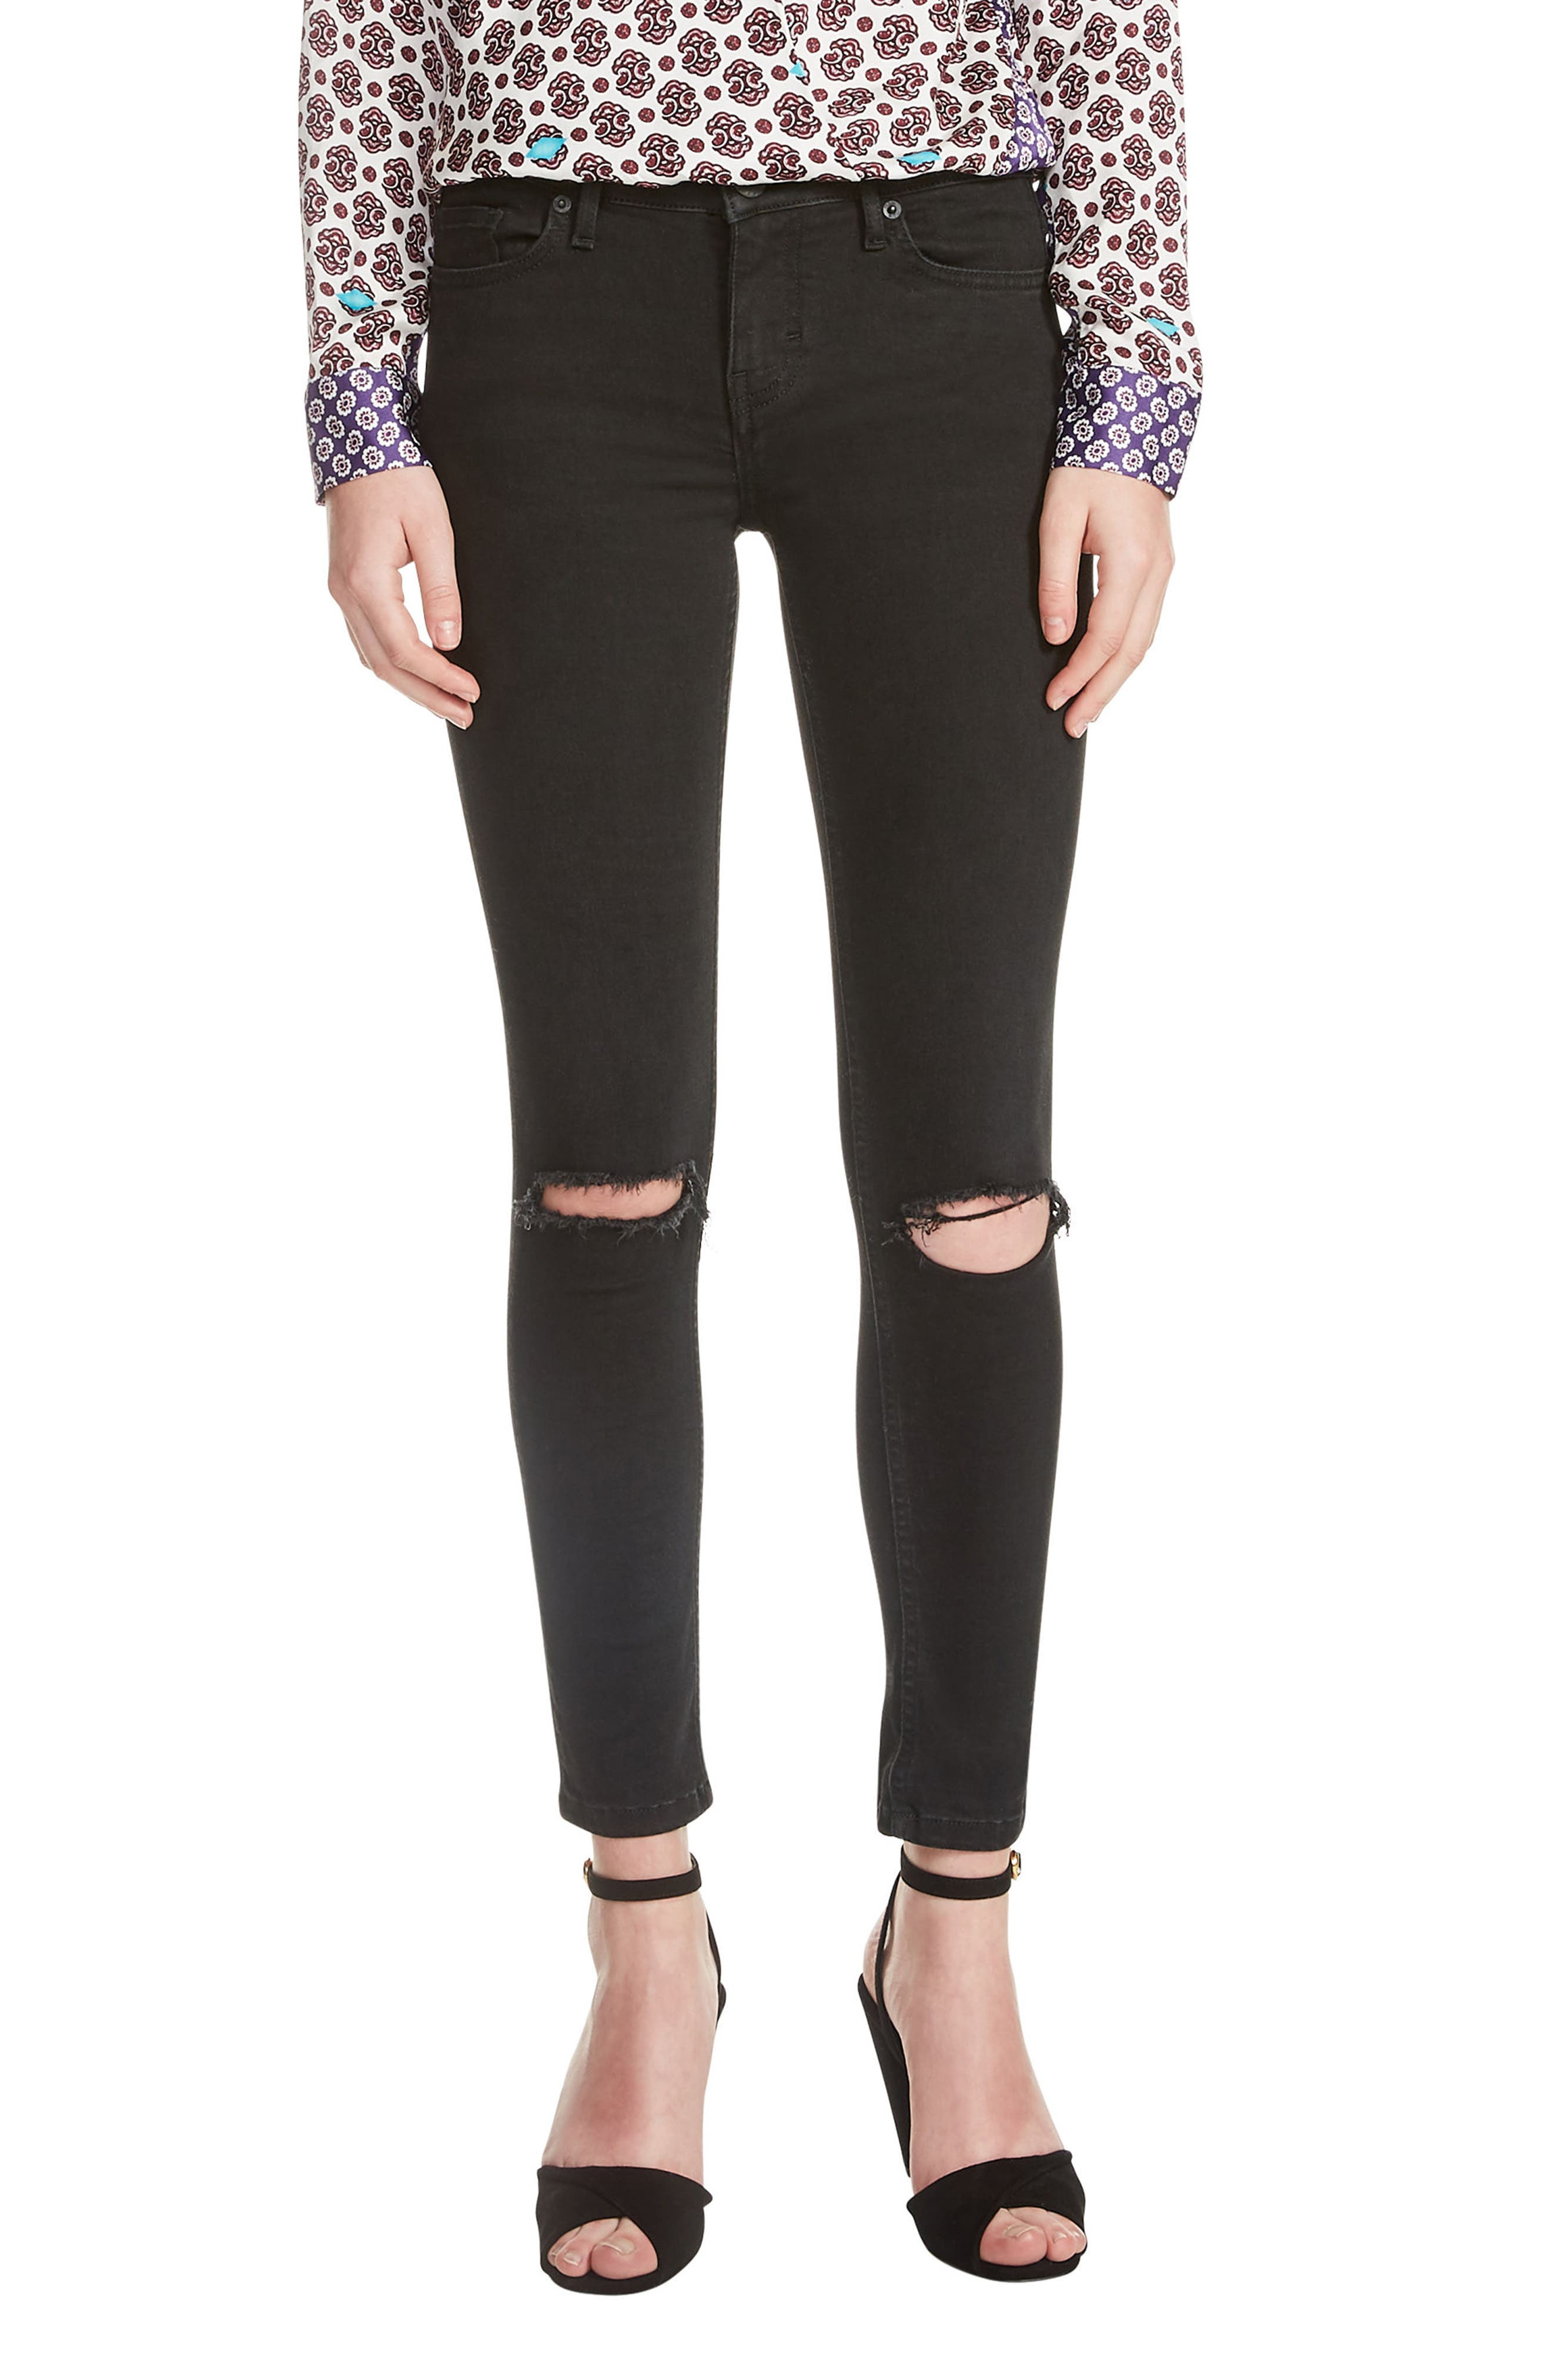 Priska Ripped Bee Embroidery Black Skinny Jeans,                         Main,                         color, 001